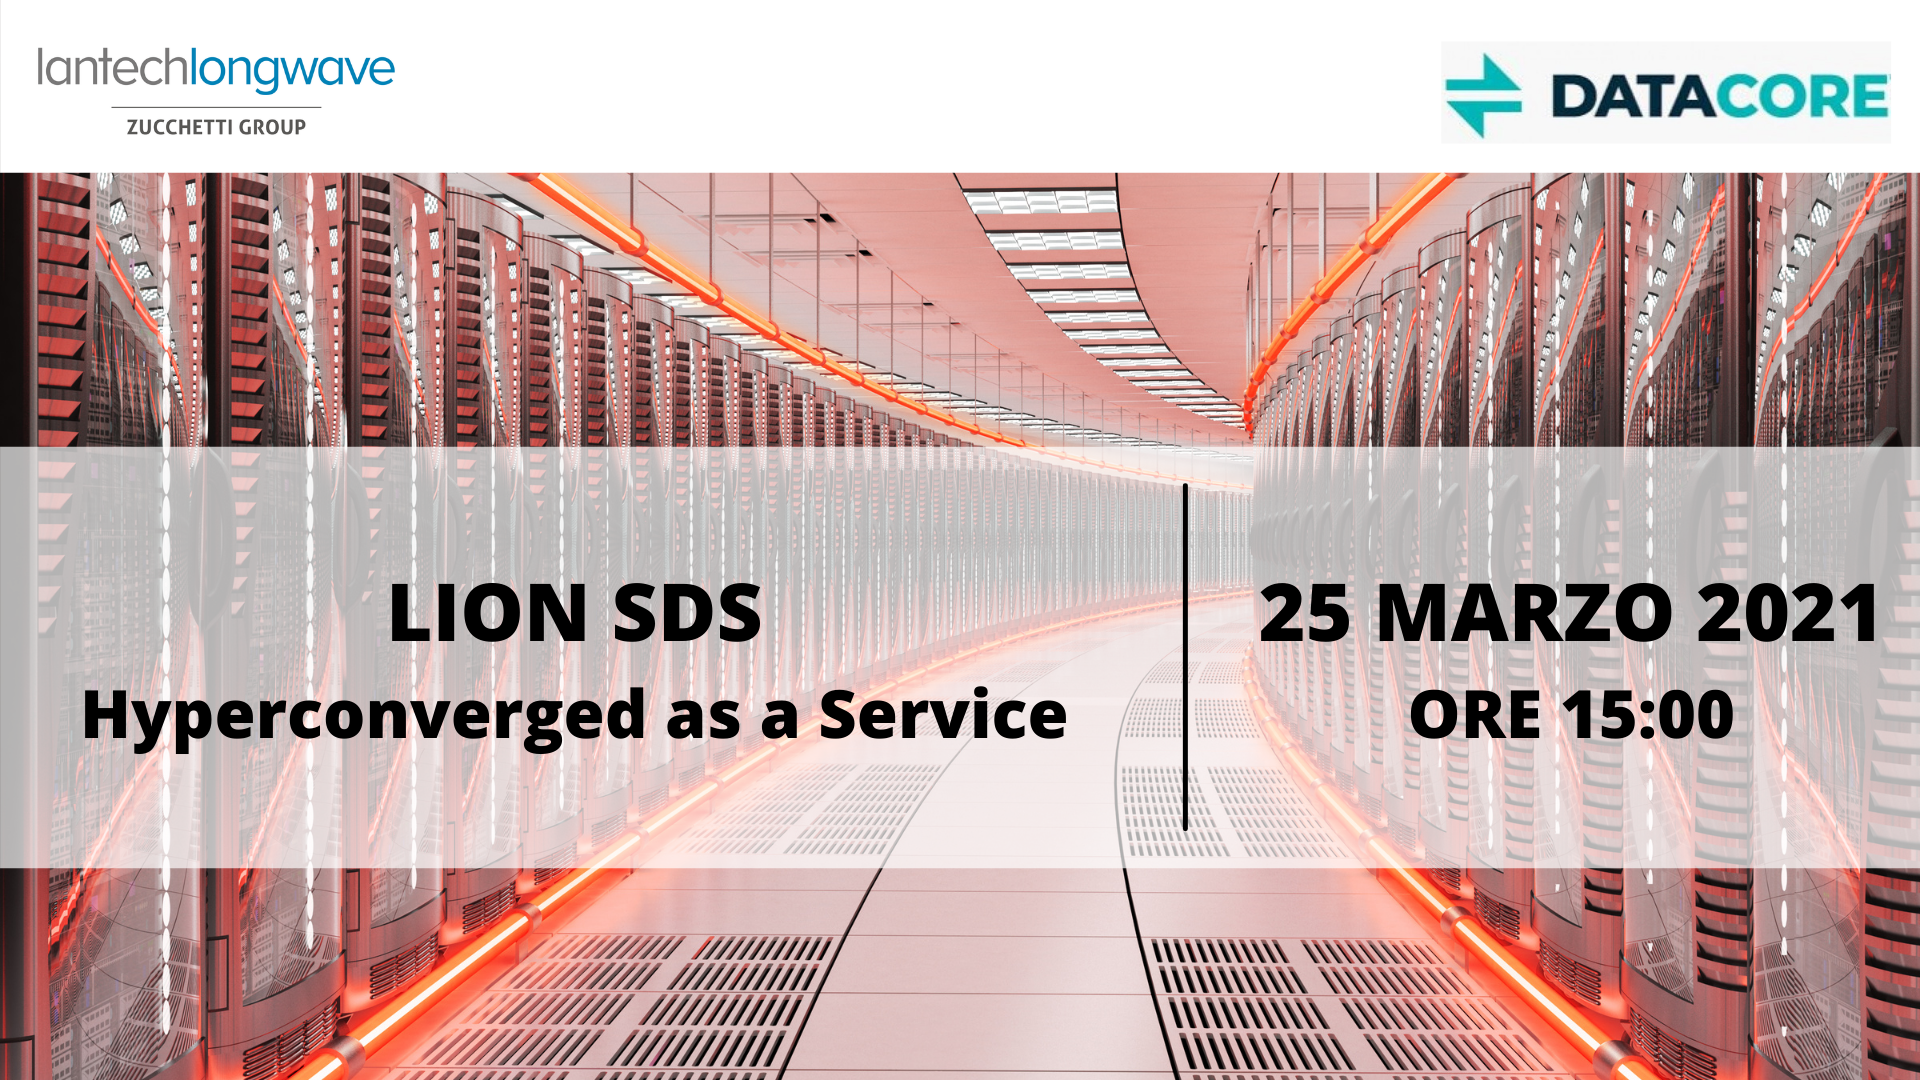 25 marzo - LION SDS: hyperconverged as a service